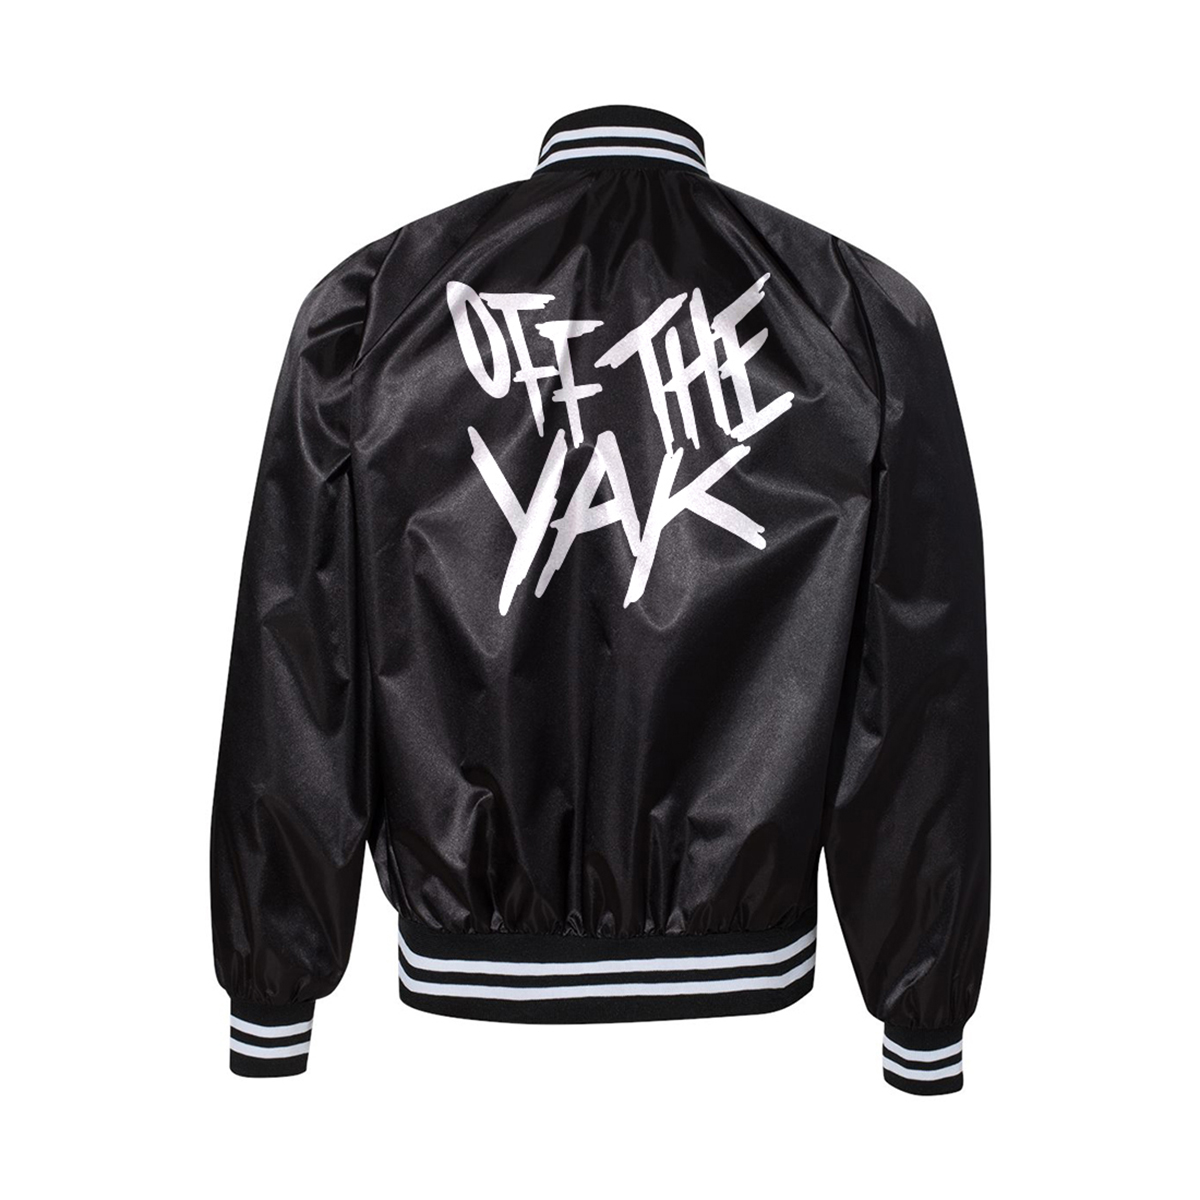 Young M.A Off the Yak Satin Jacket